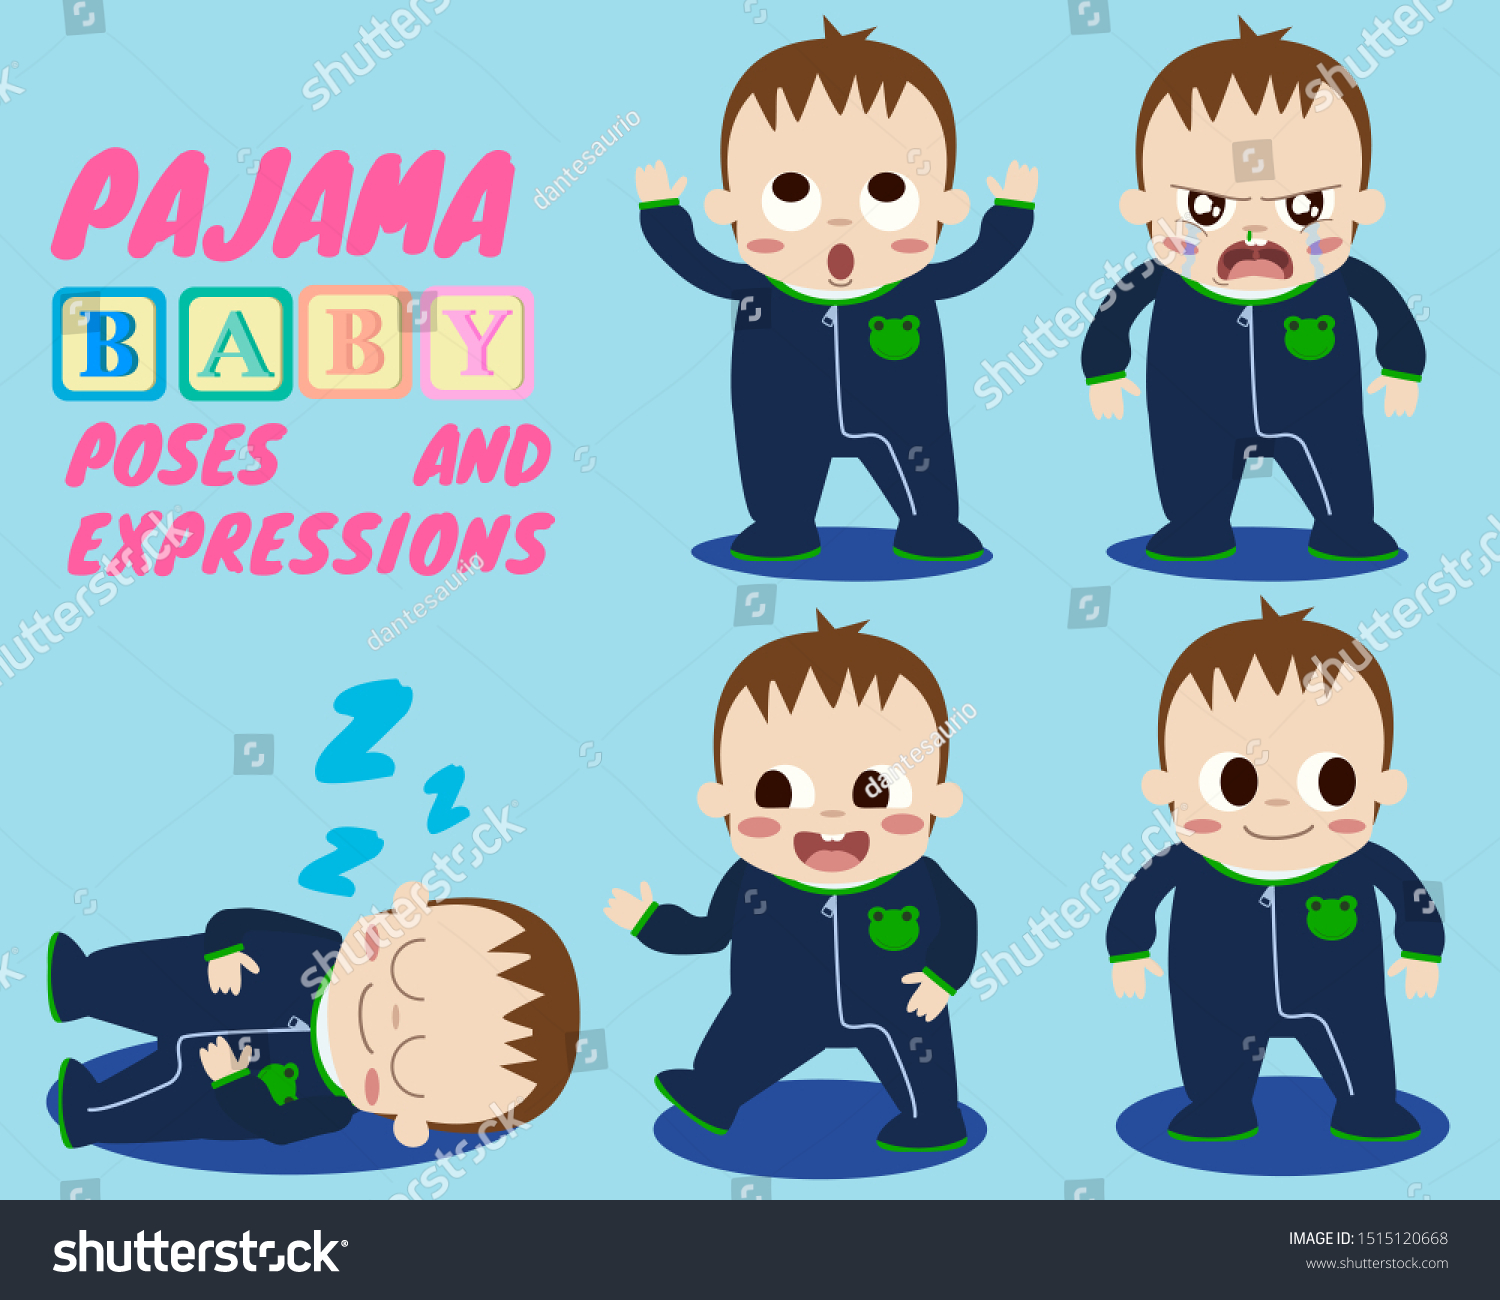 stock-vector-pajama-baby-poses-and-expressions-1515120668